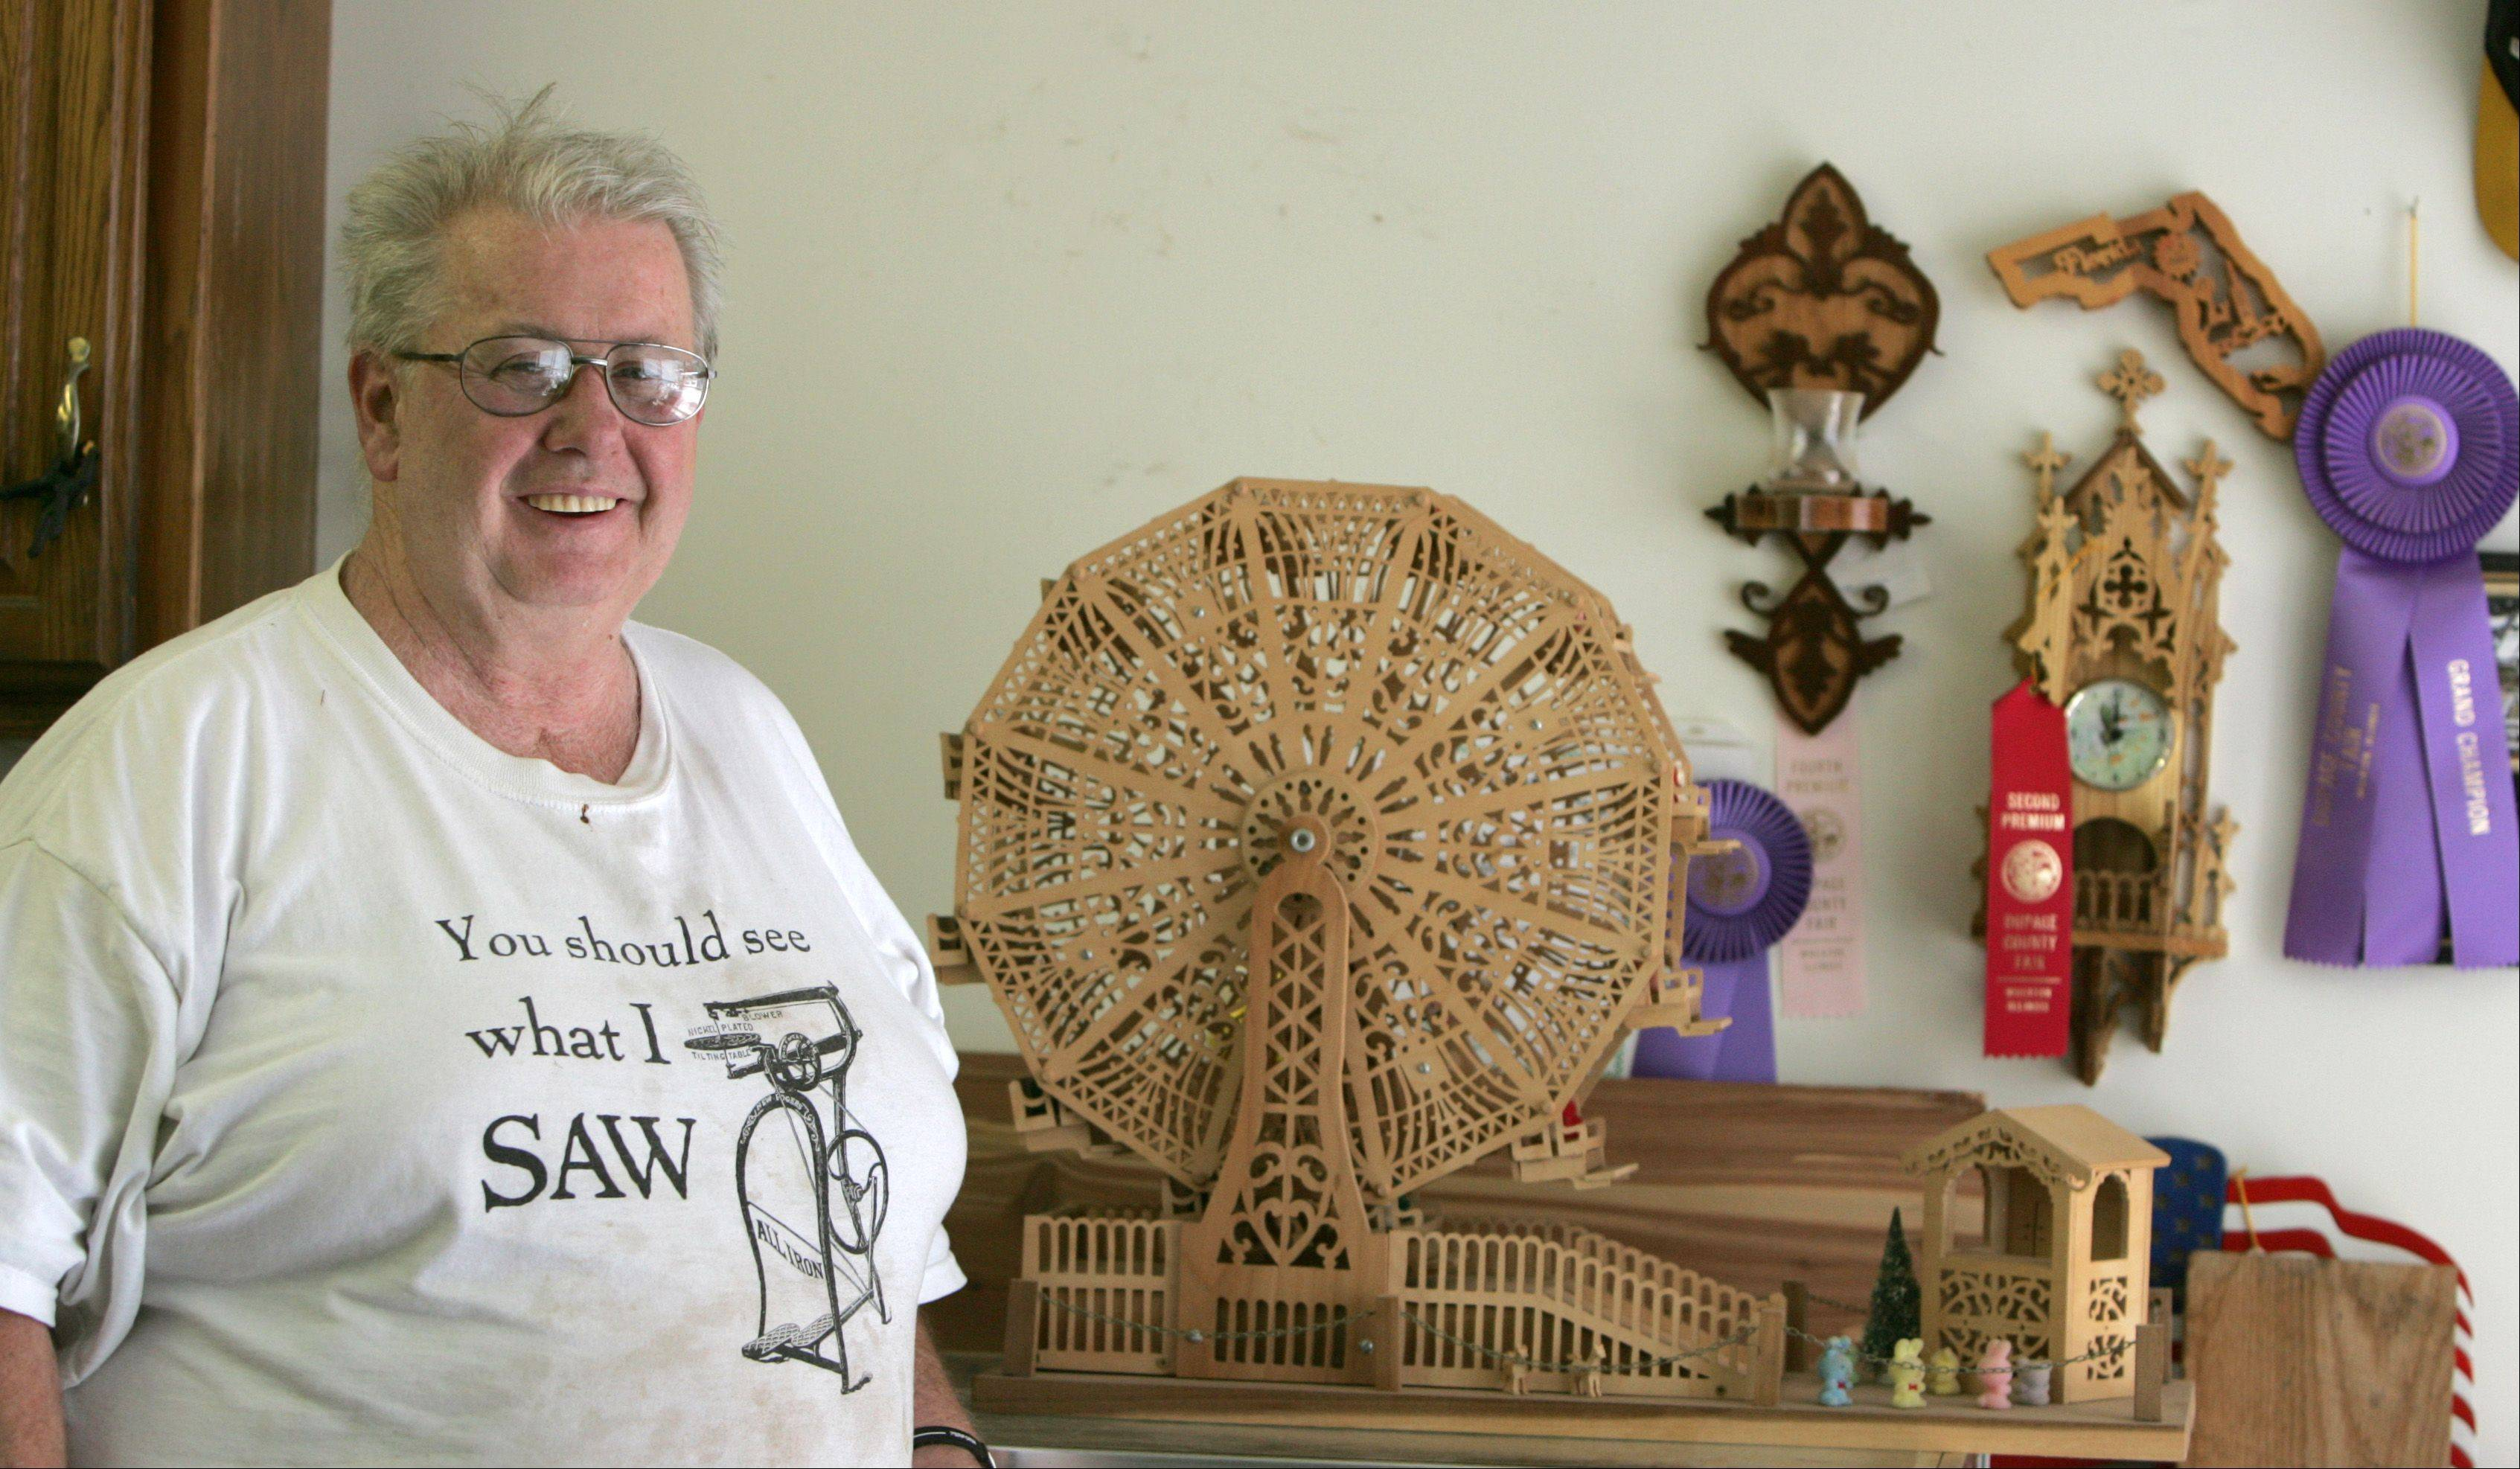 From woodworking to photography, DuPage puts hobbies on display at county fair